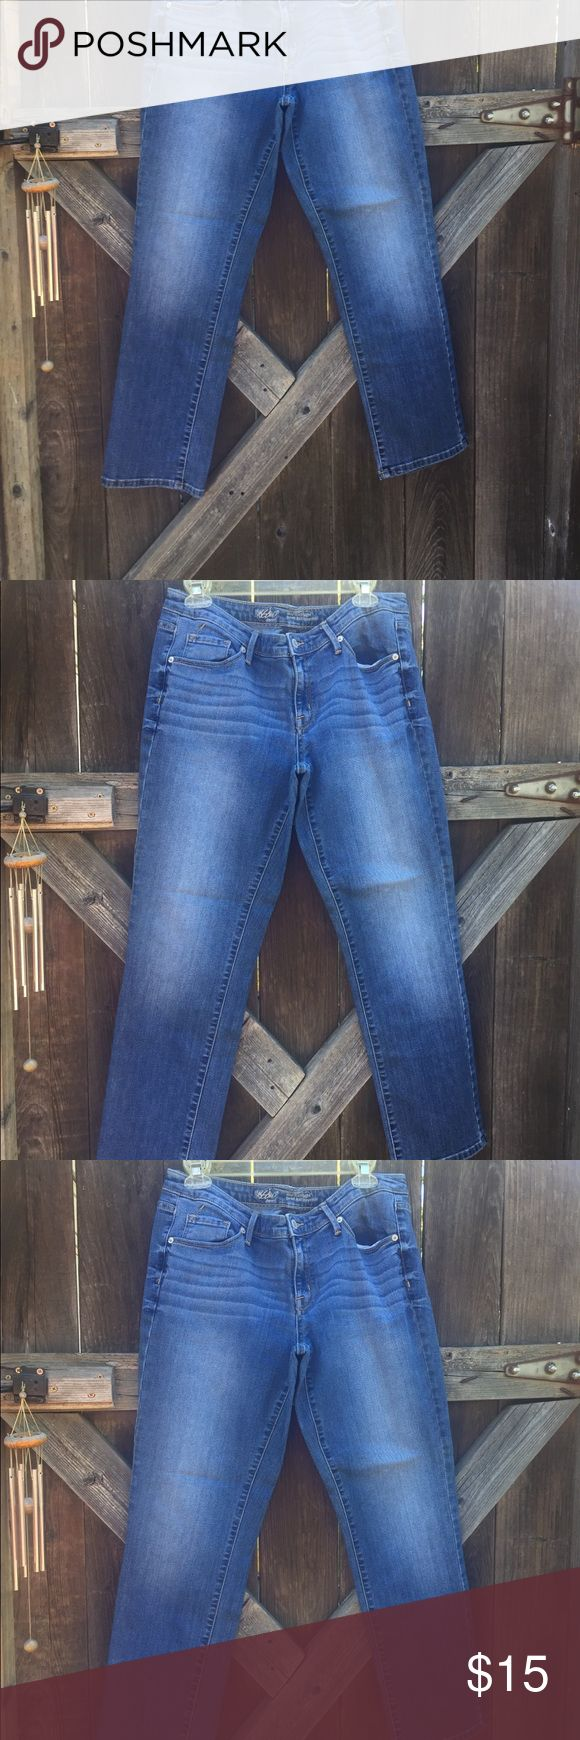 """Women Mid Rise Straight Jeans Love these!! 29"""" Inseam, mid rise straight Modern. Mossimo Denim. 12 Short, gently worn in great condition. Thanks for visiting my closet❣️ Mossimo denim Jeans Straight Leg"""